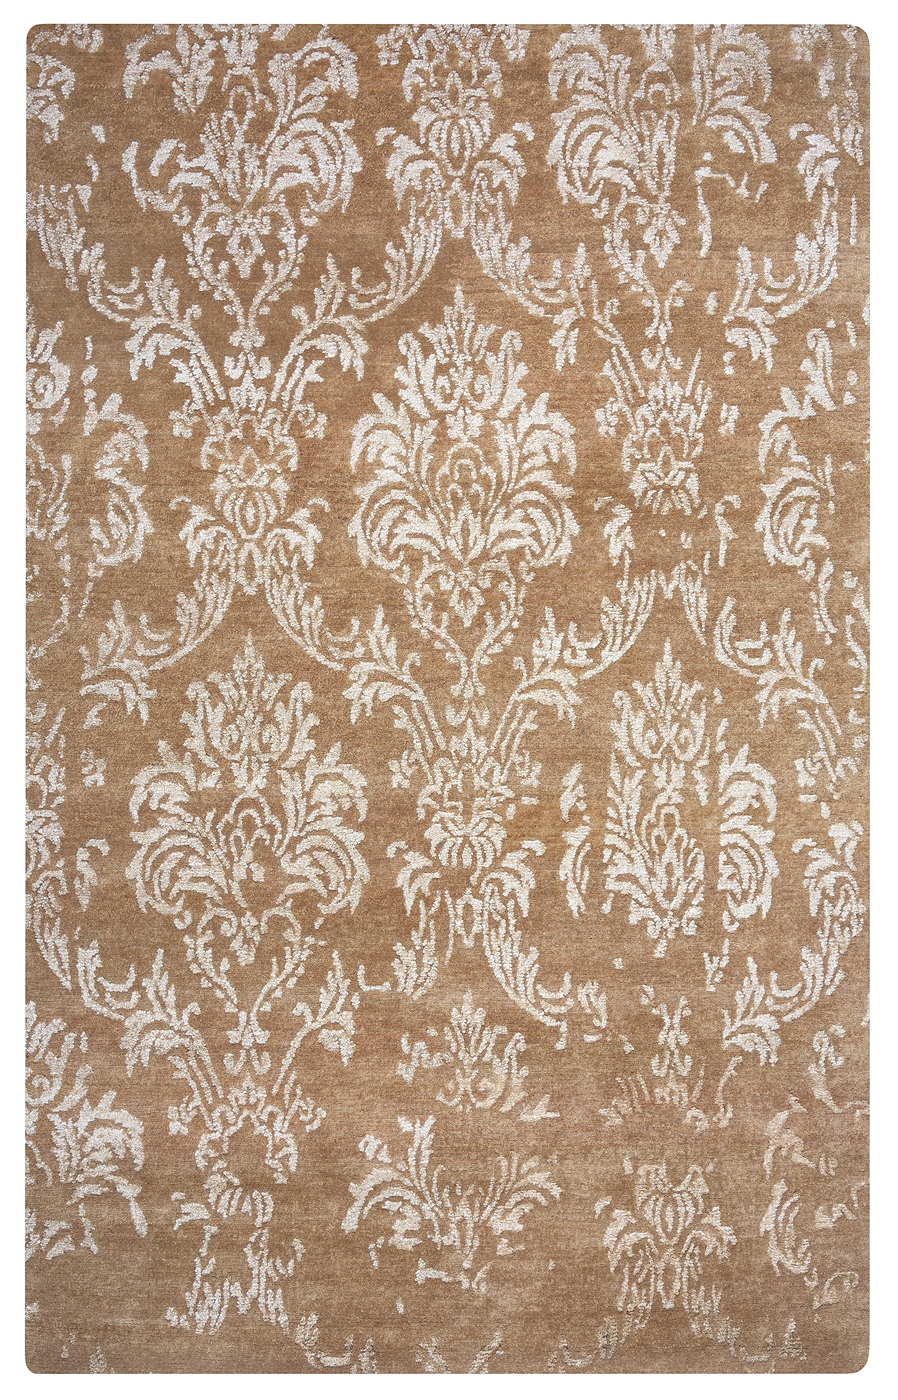 Avant Garde Damask Wool Area Rug In Camel Champagne Silver